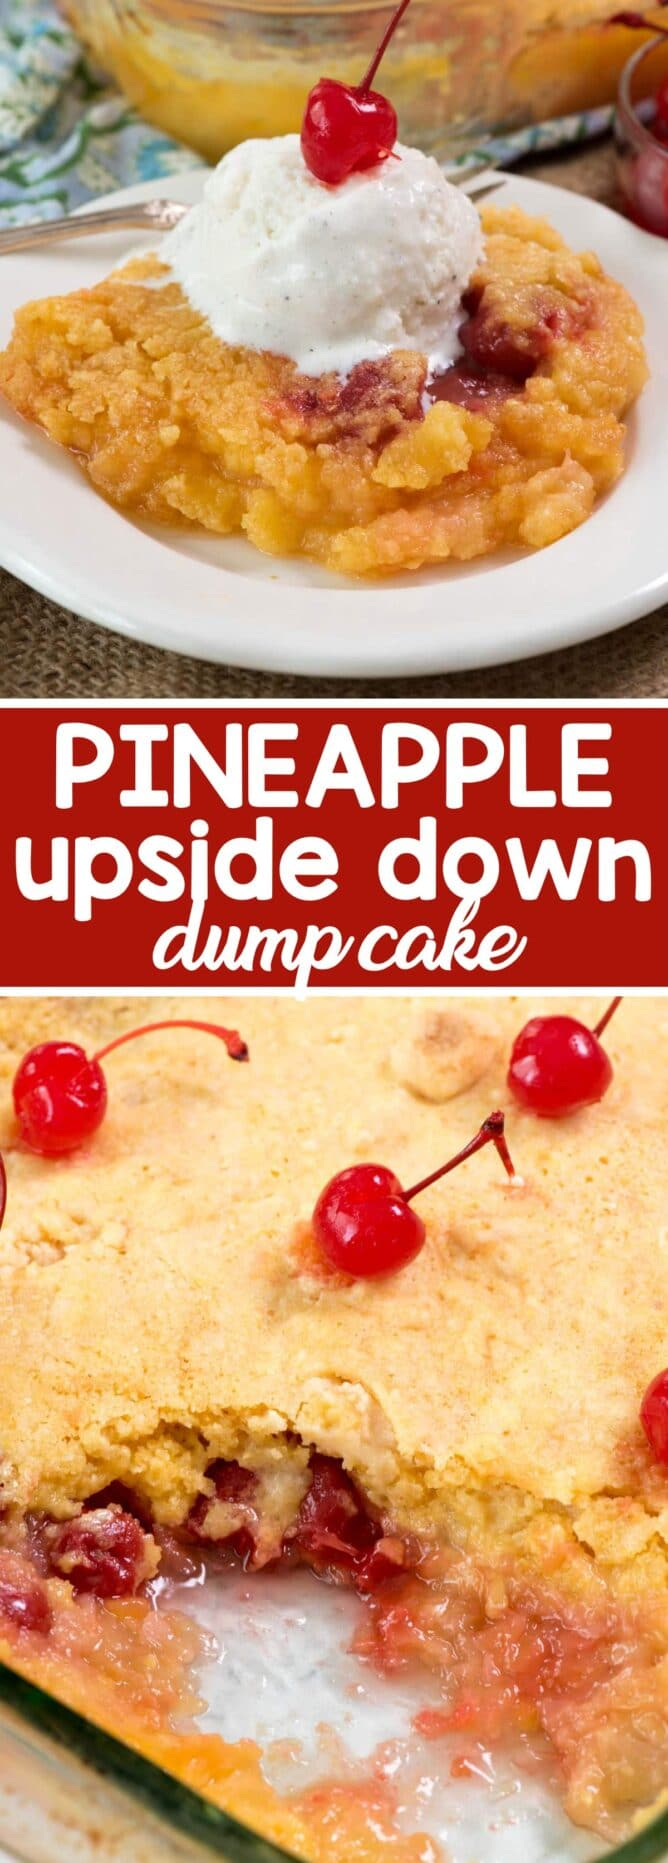 Pineapple Upside Down Dump Cake collage photos